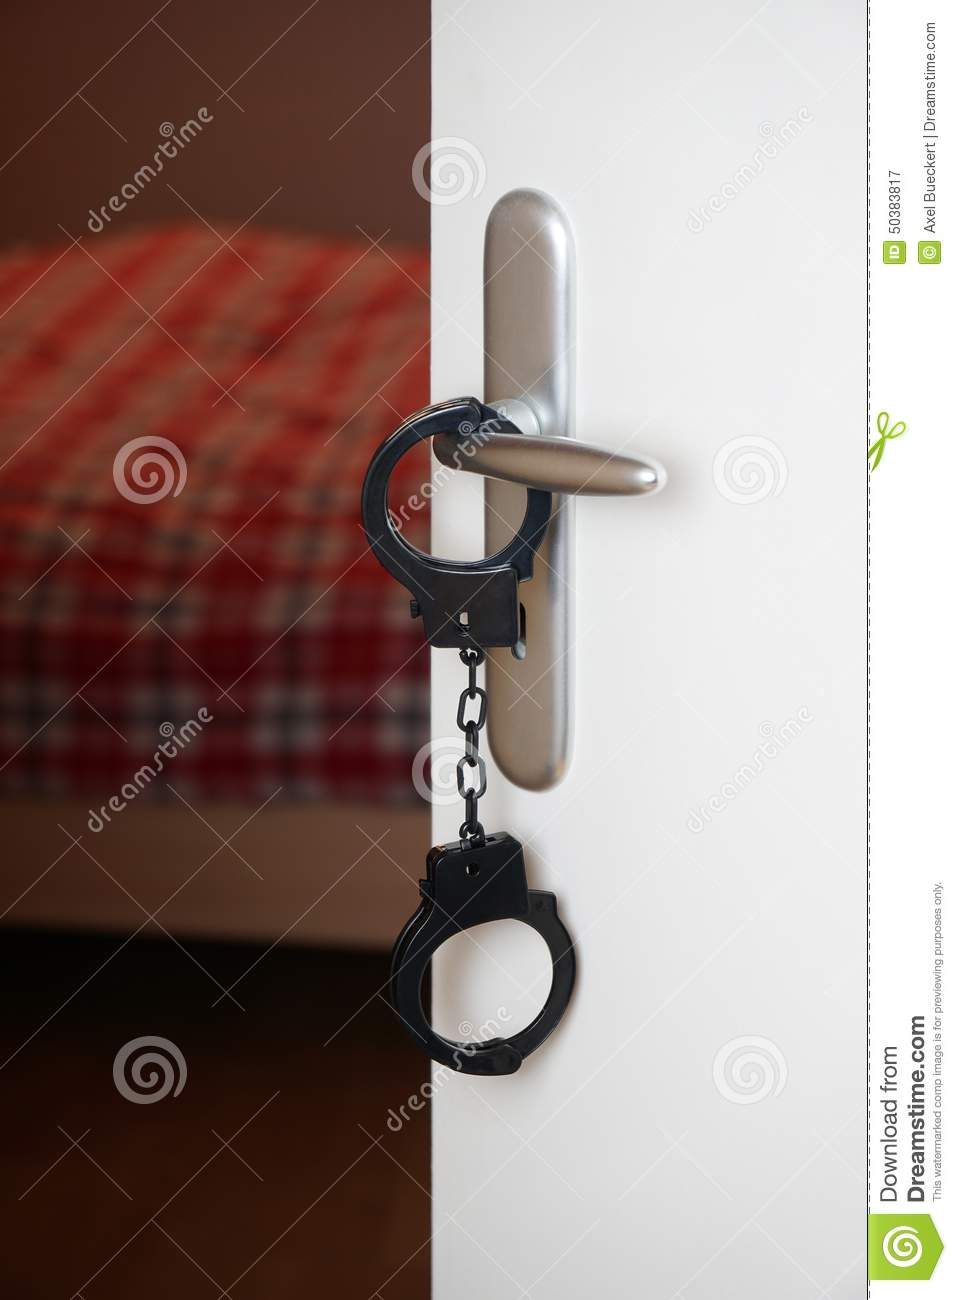 handcuffs on bedroom door handle stock photo image 50383817